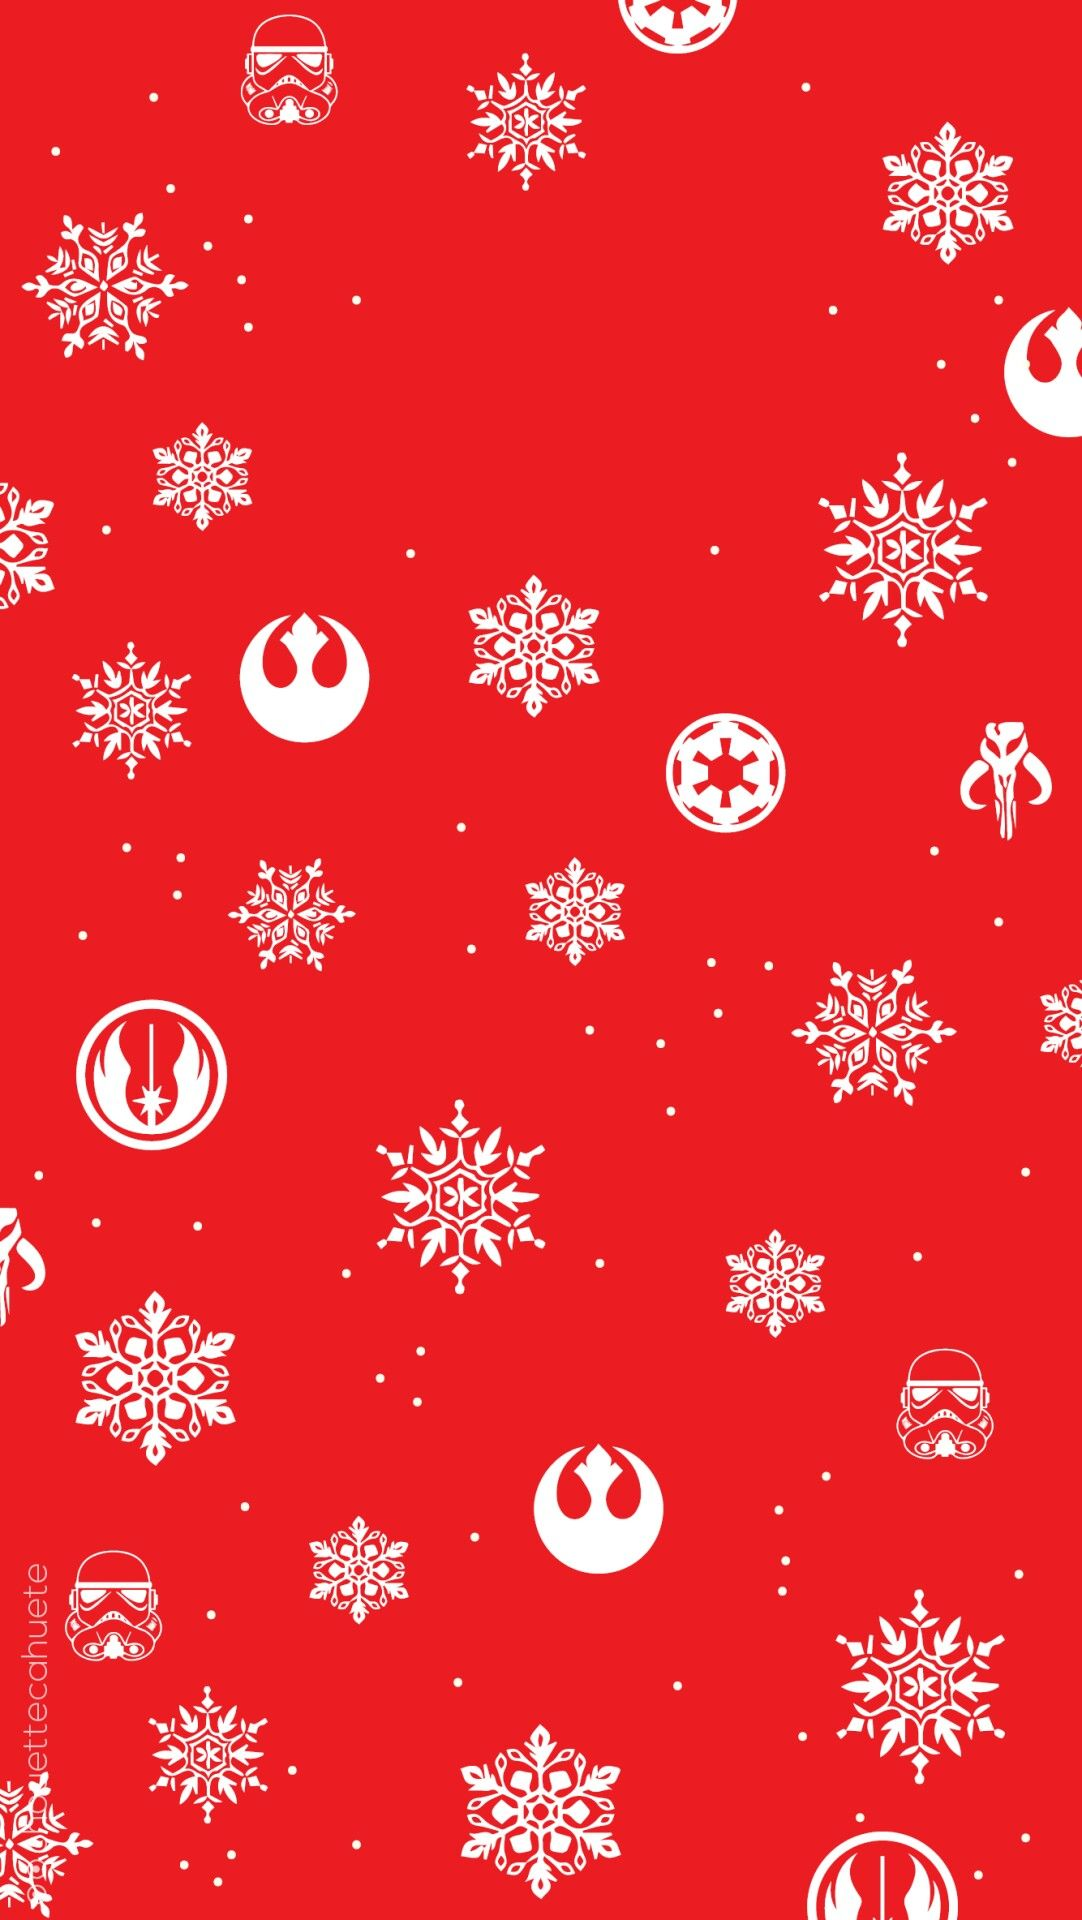 Christmas Star Wars Star Wars Wallpaper Iphone Star Wars Art Star Wars Background